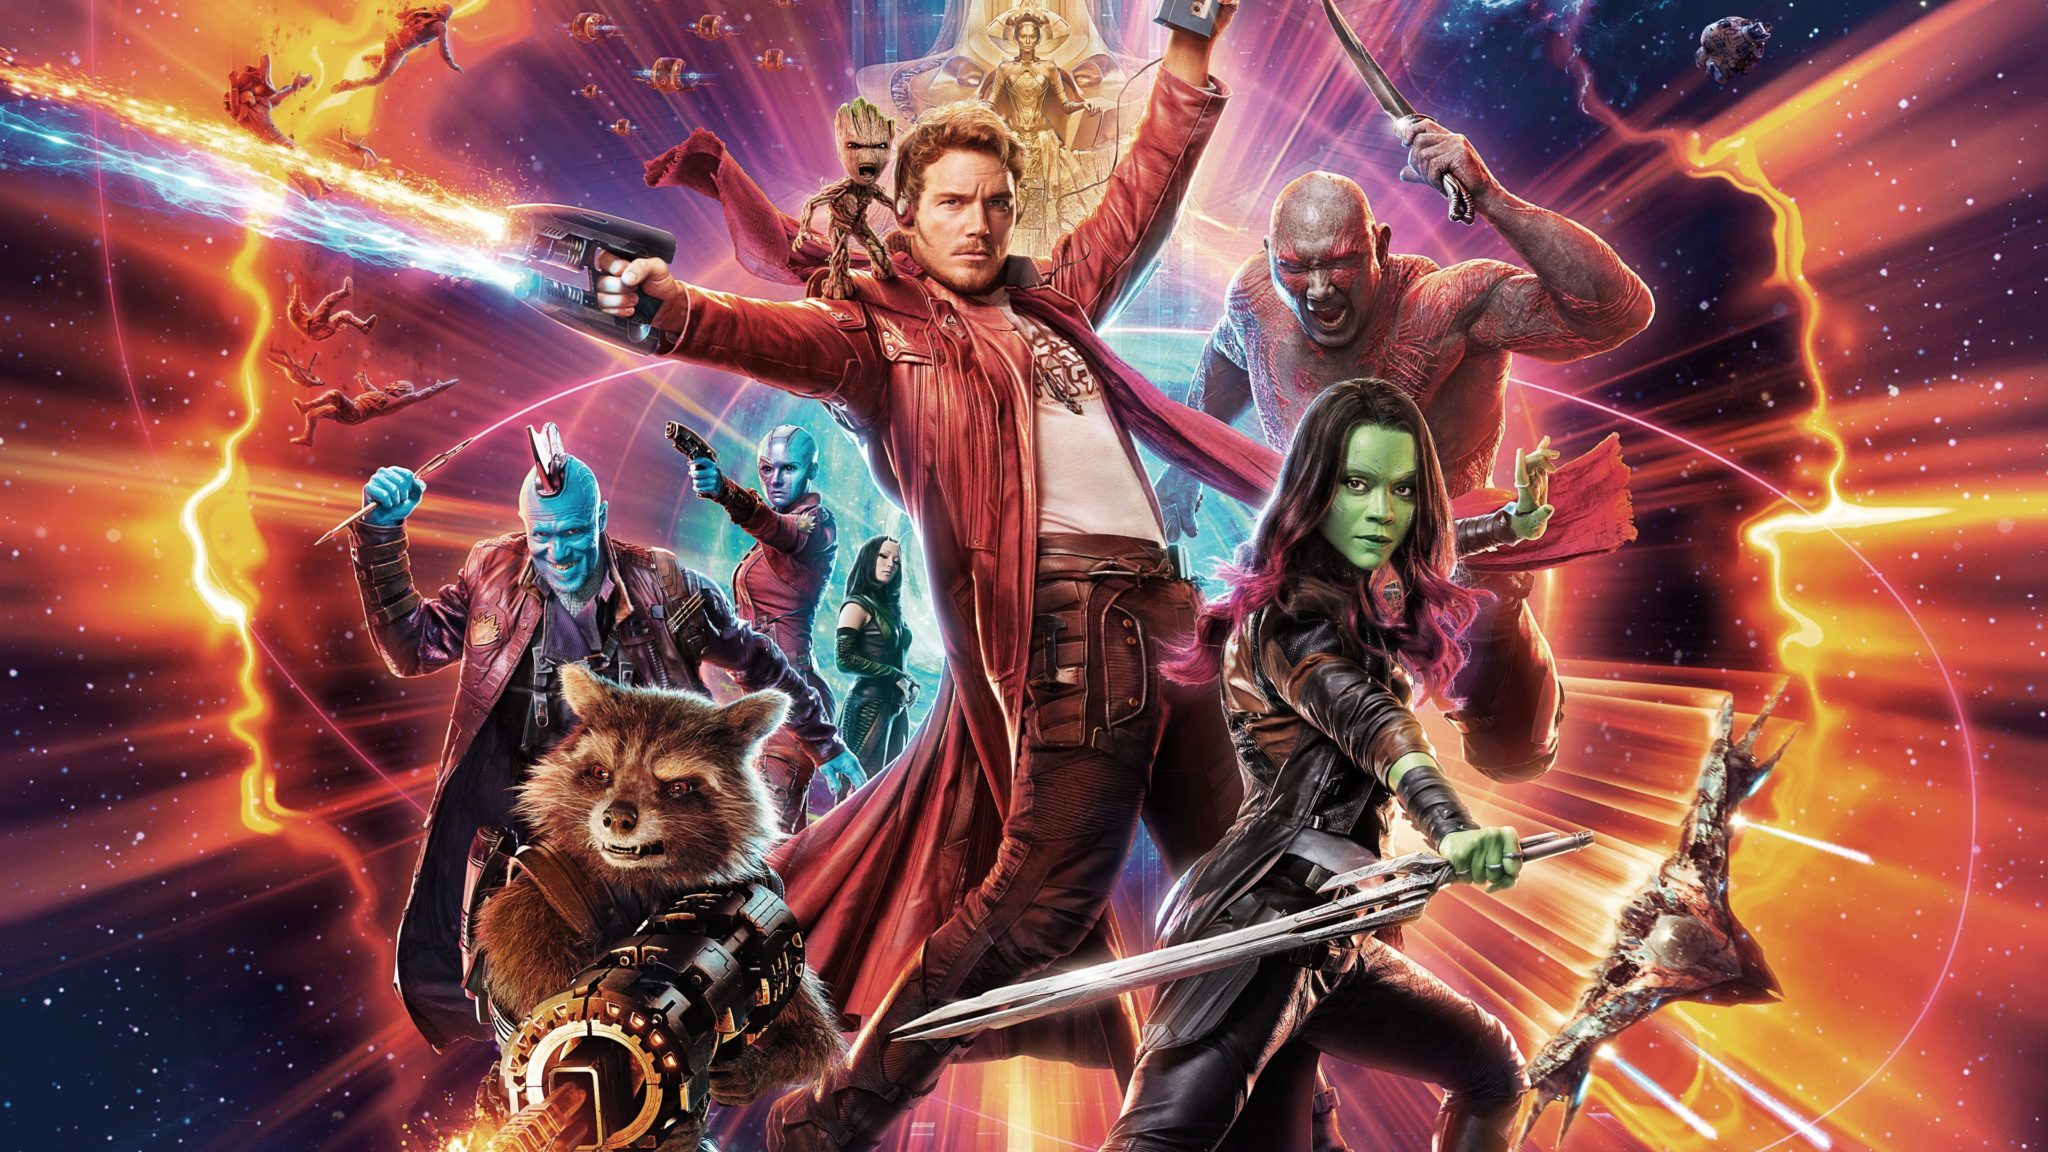 guardians-of-the-galaxy-2-4k-2017.jpg